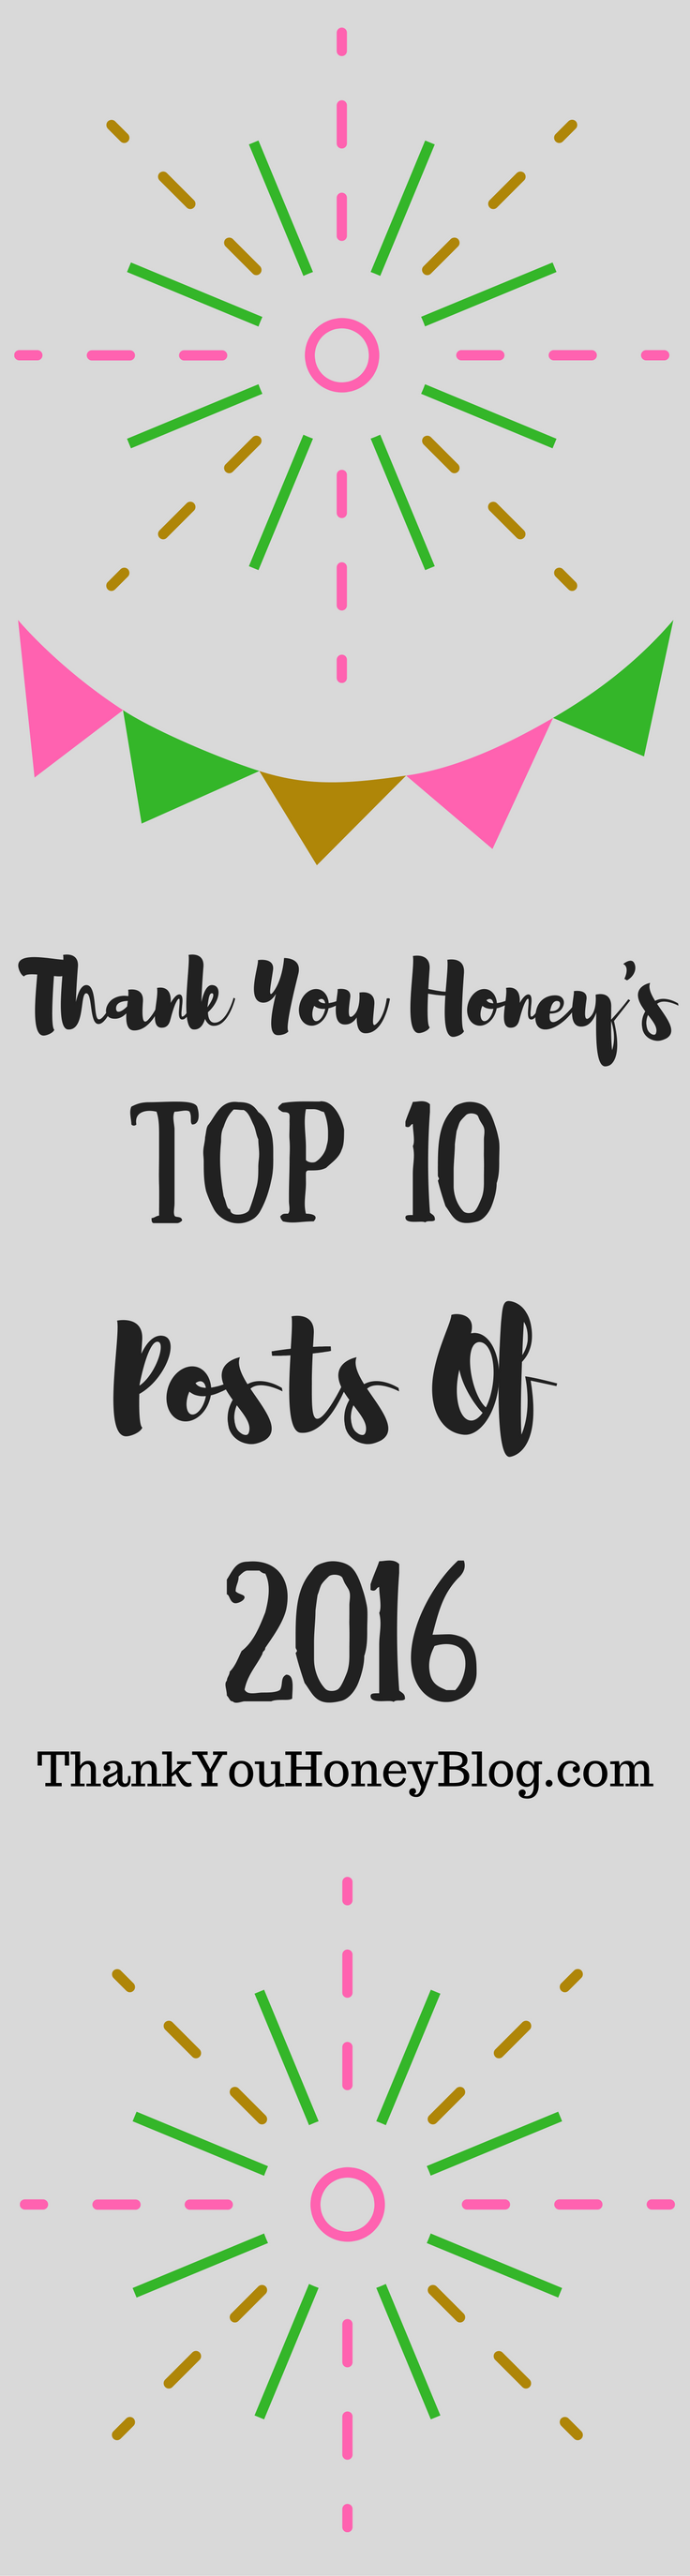 Thank You Honey's Top 10 Posts of 2016